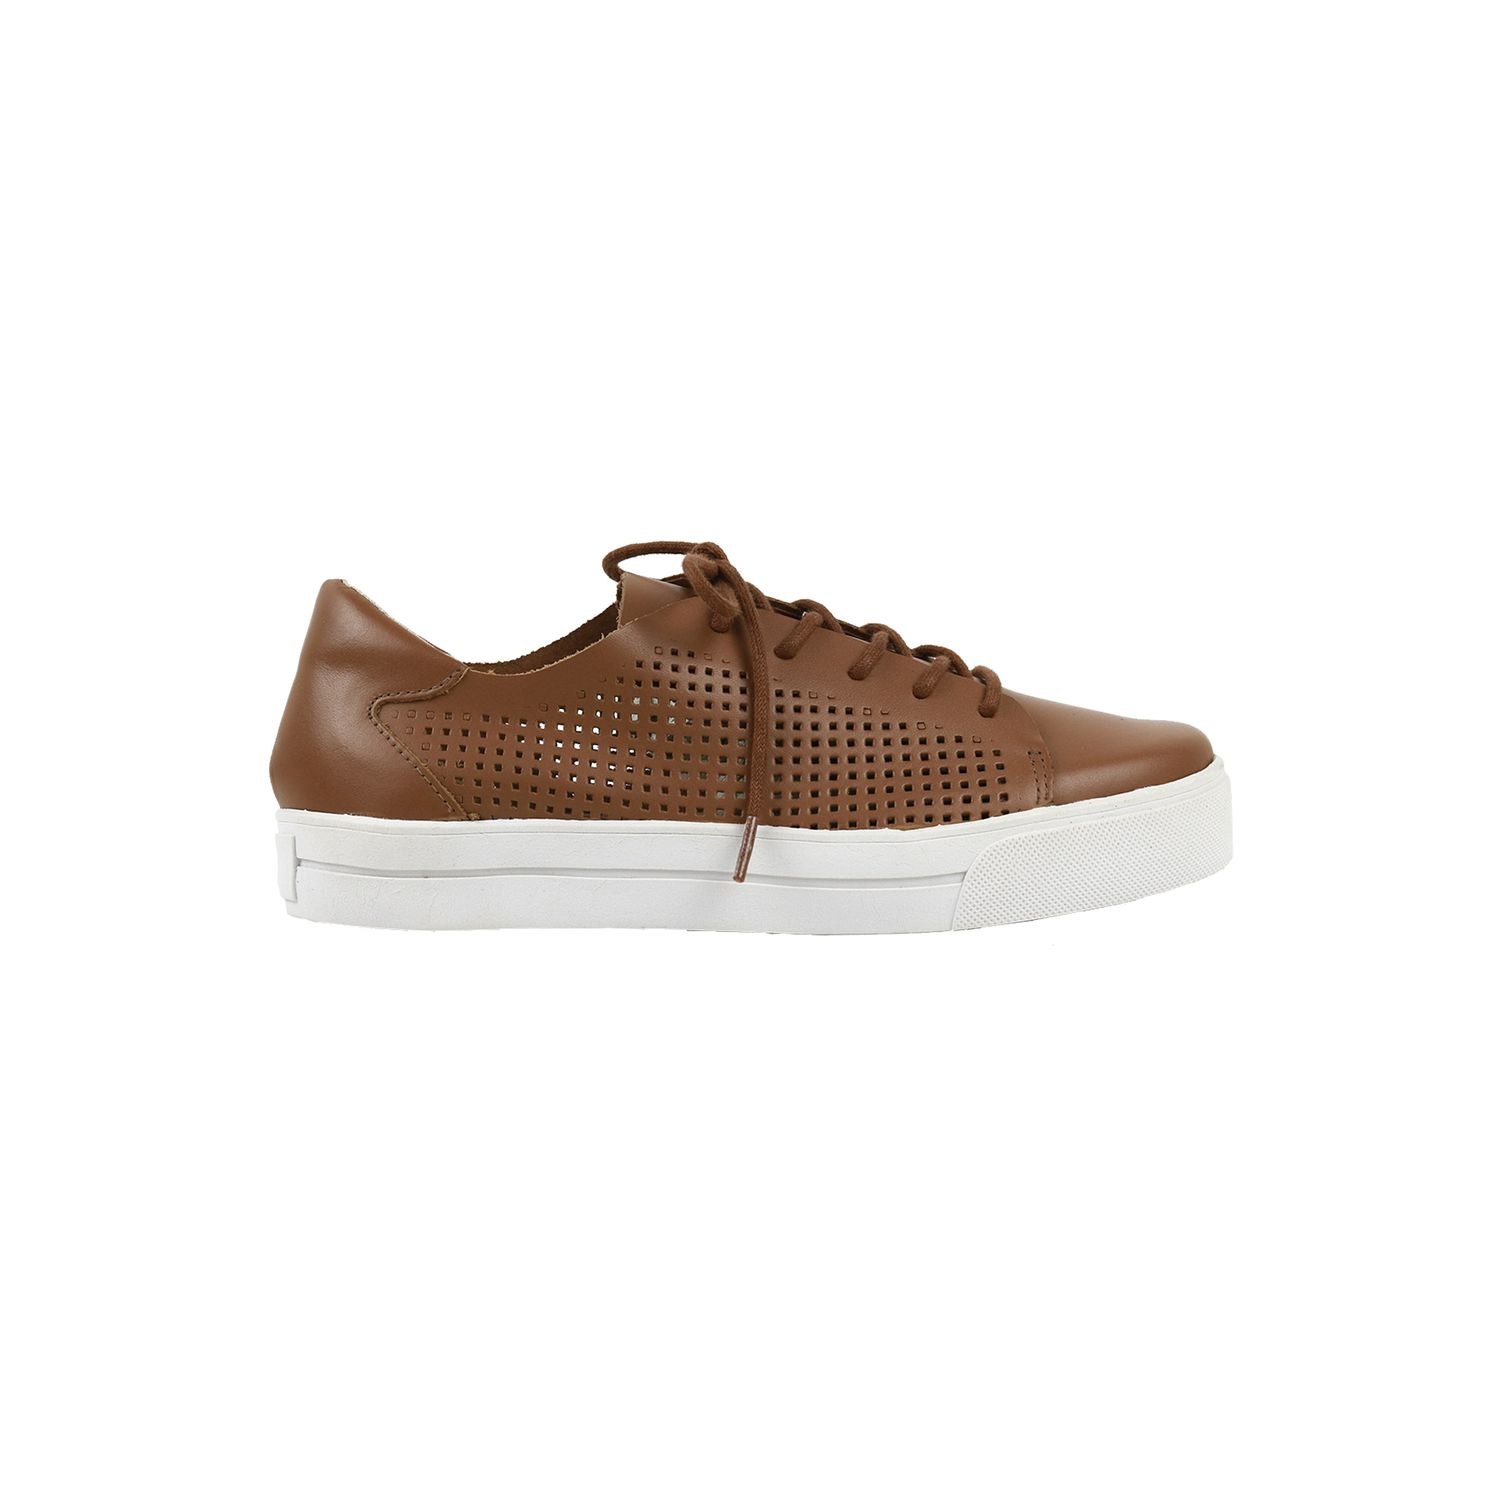 crcs00018_whisky_tenis_em_couro_a_laser_2